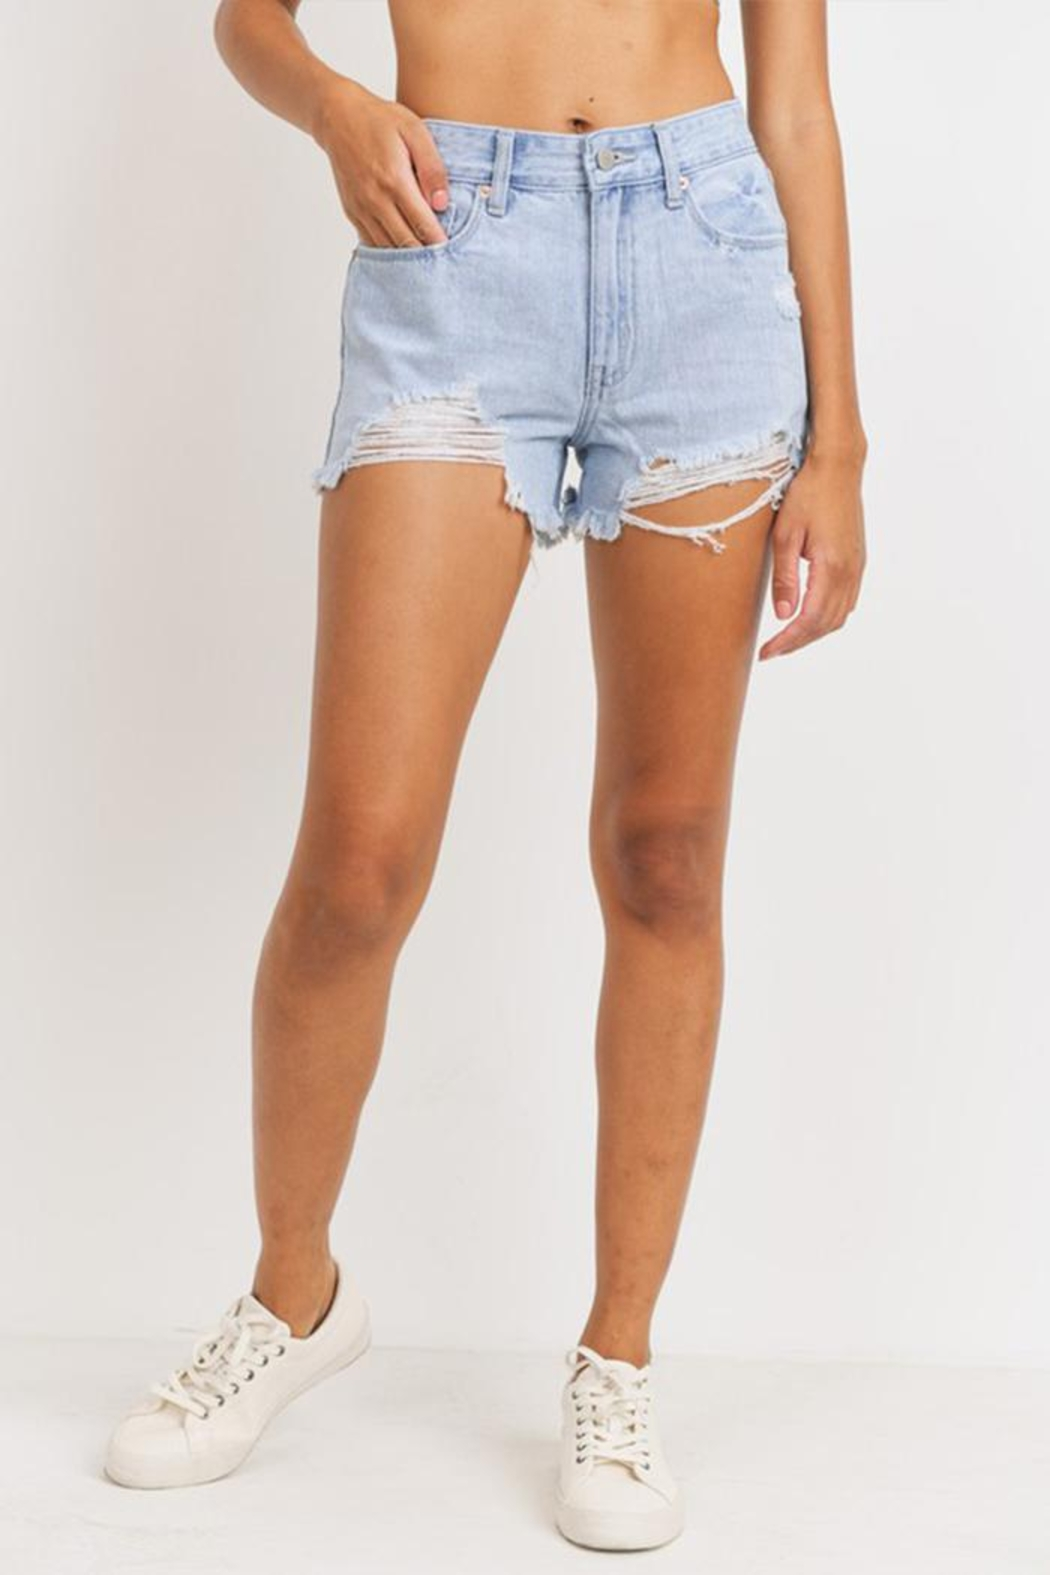 Just Panmaco Inc. High-Rise Destroyed Shorts - Front Full Image